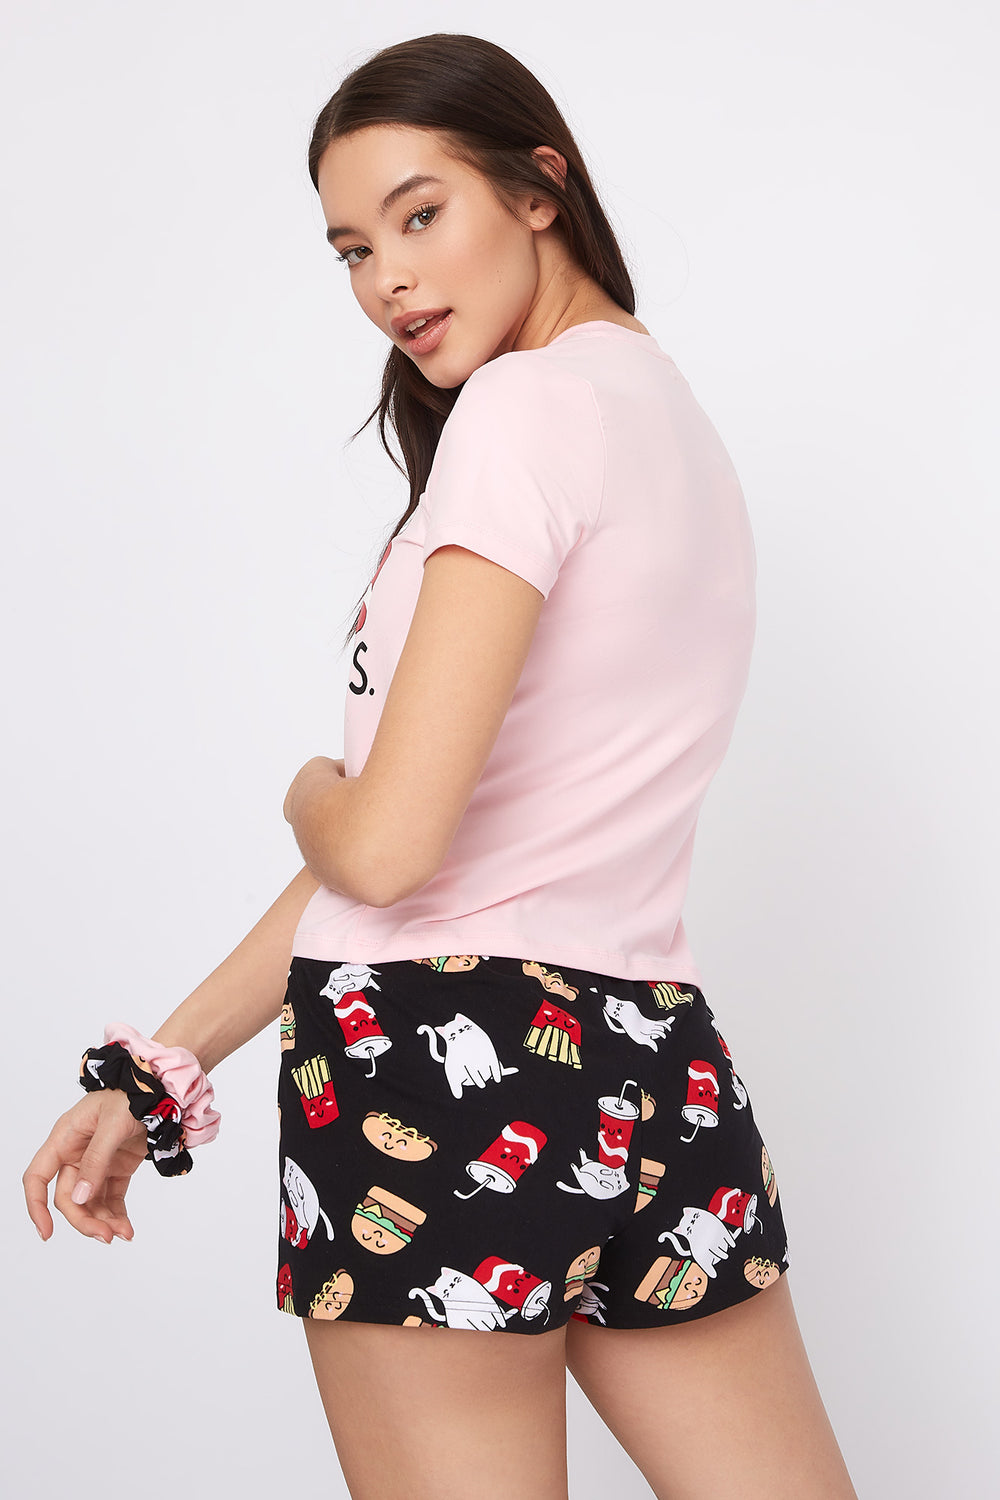 Graphic 3-Piece Pajama T-Shirt And Short Set With Scrunchies Rose